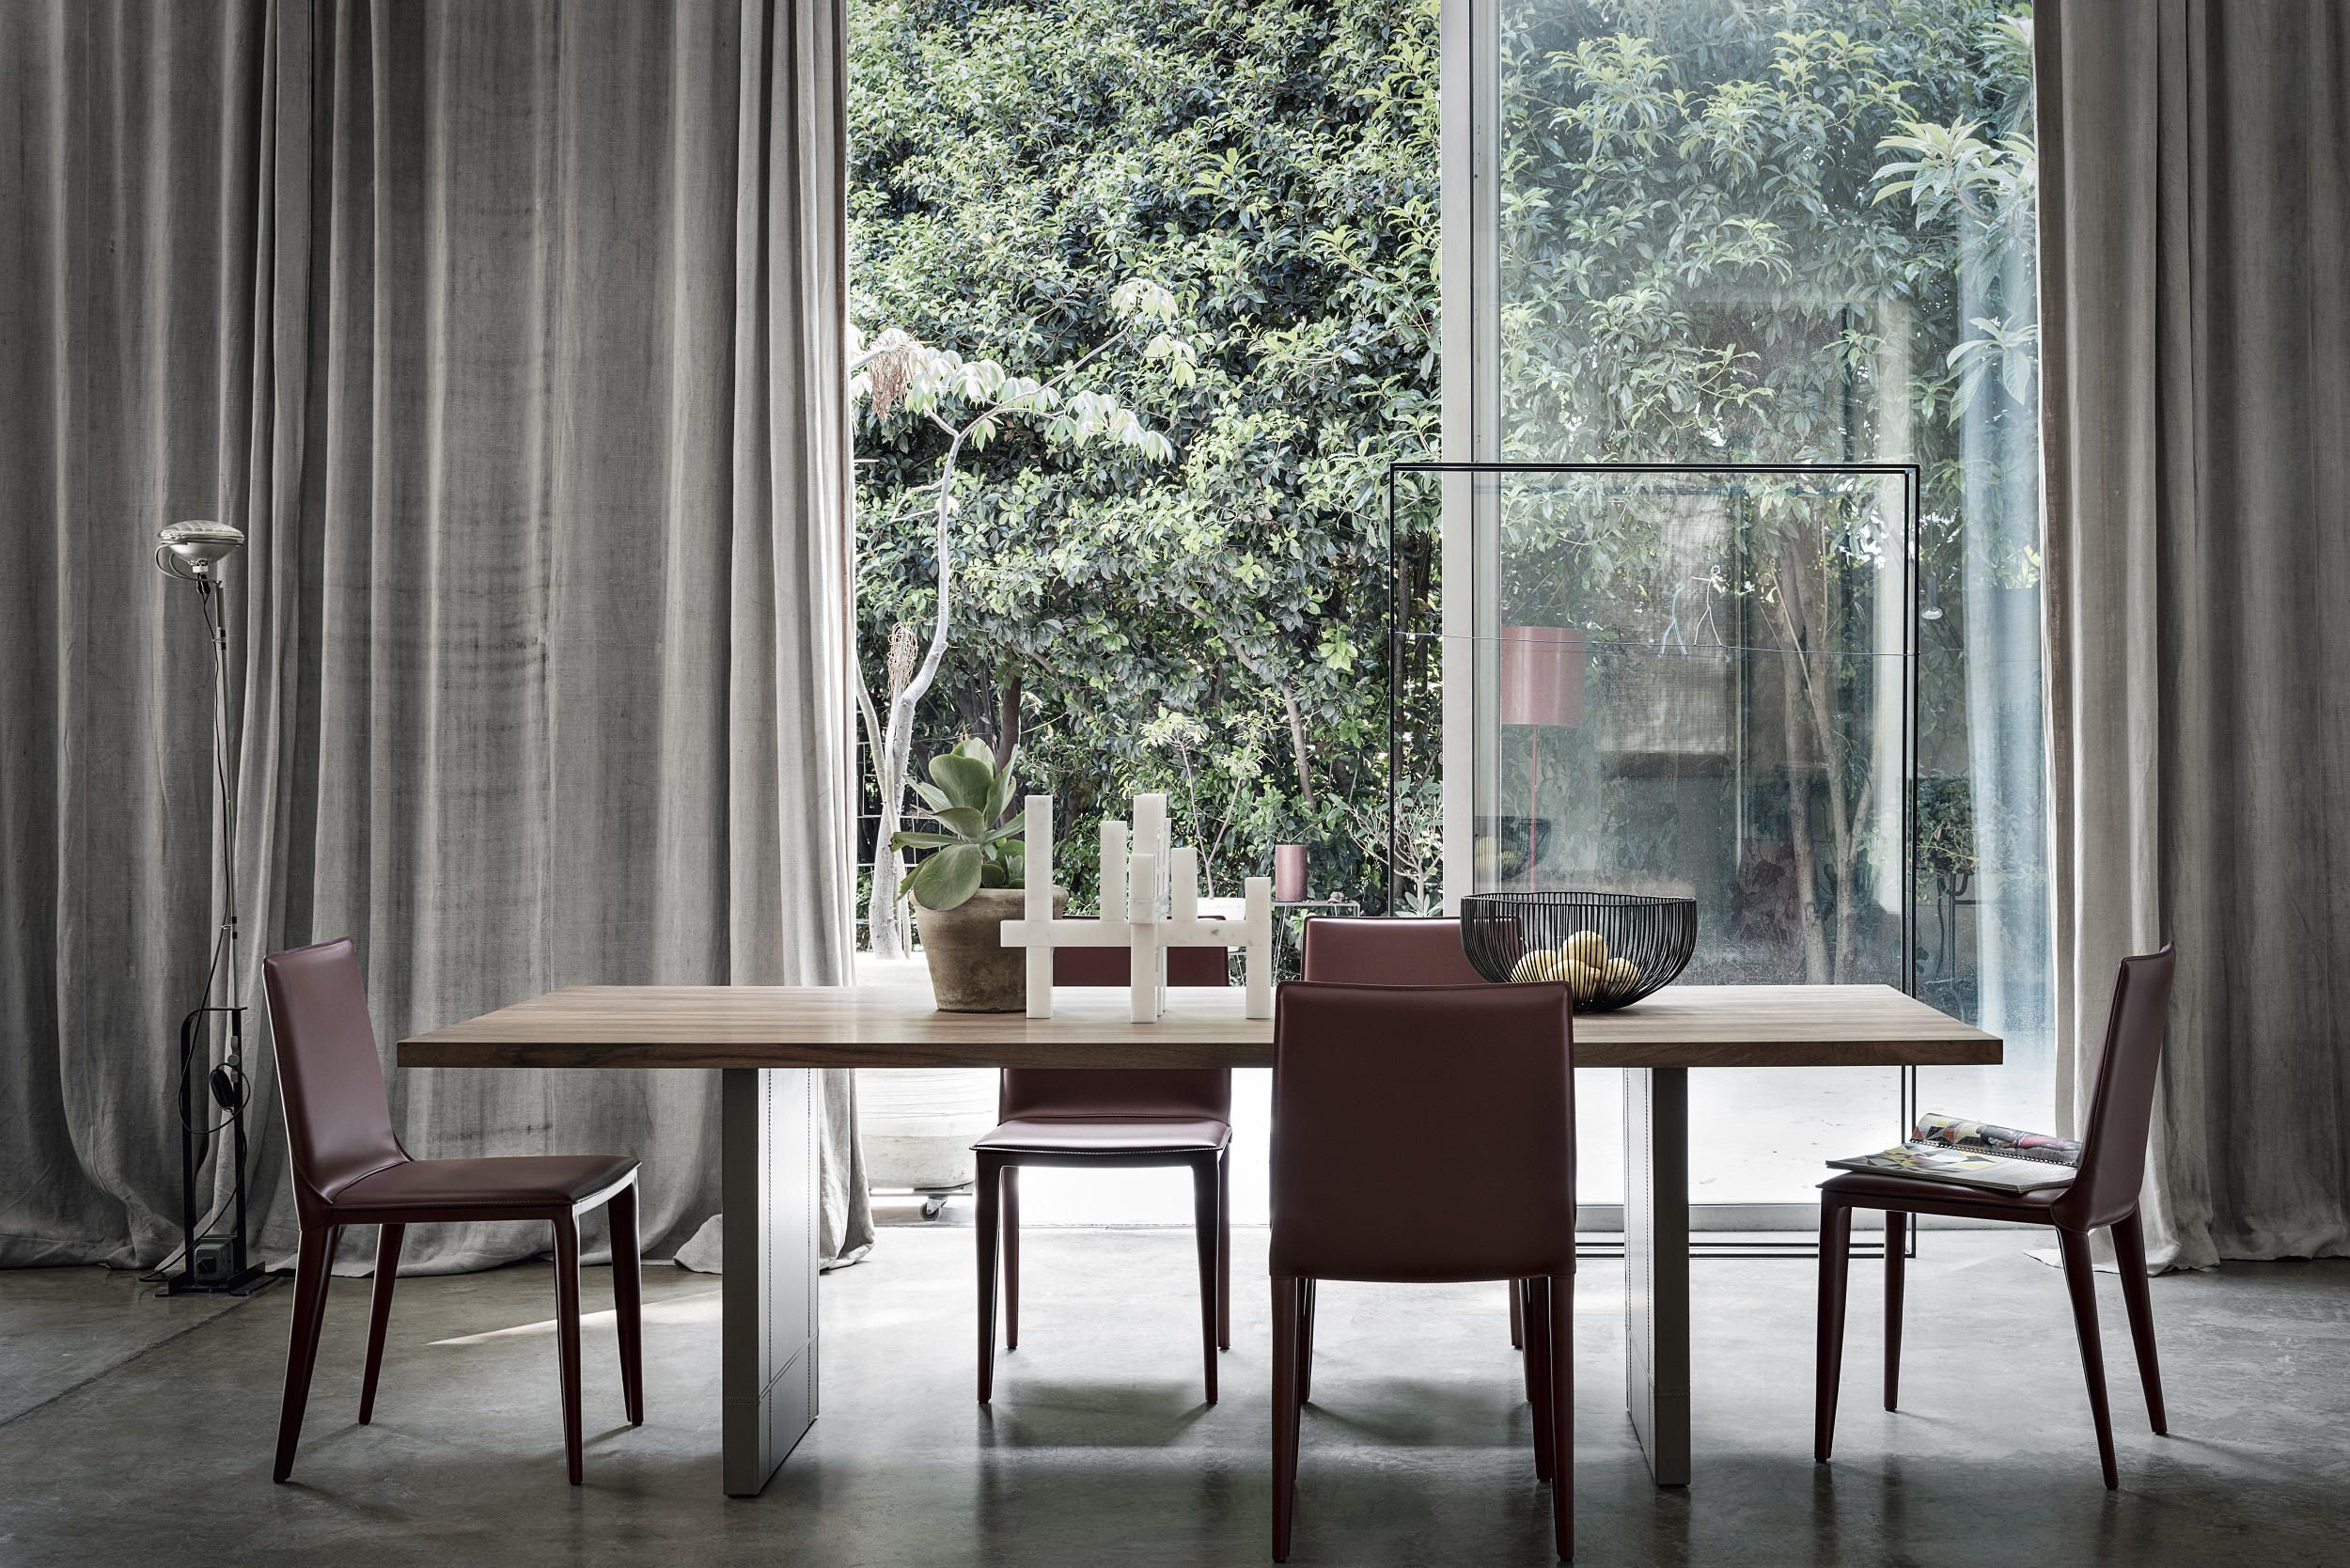 Twist Tl Table Dining Tables From Frag Architonic Contemporary Furniture Design Italian Furniture Brands Luxury Italian Furniture